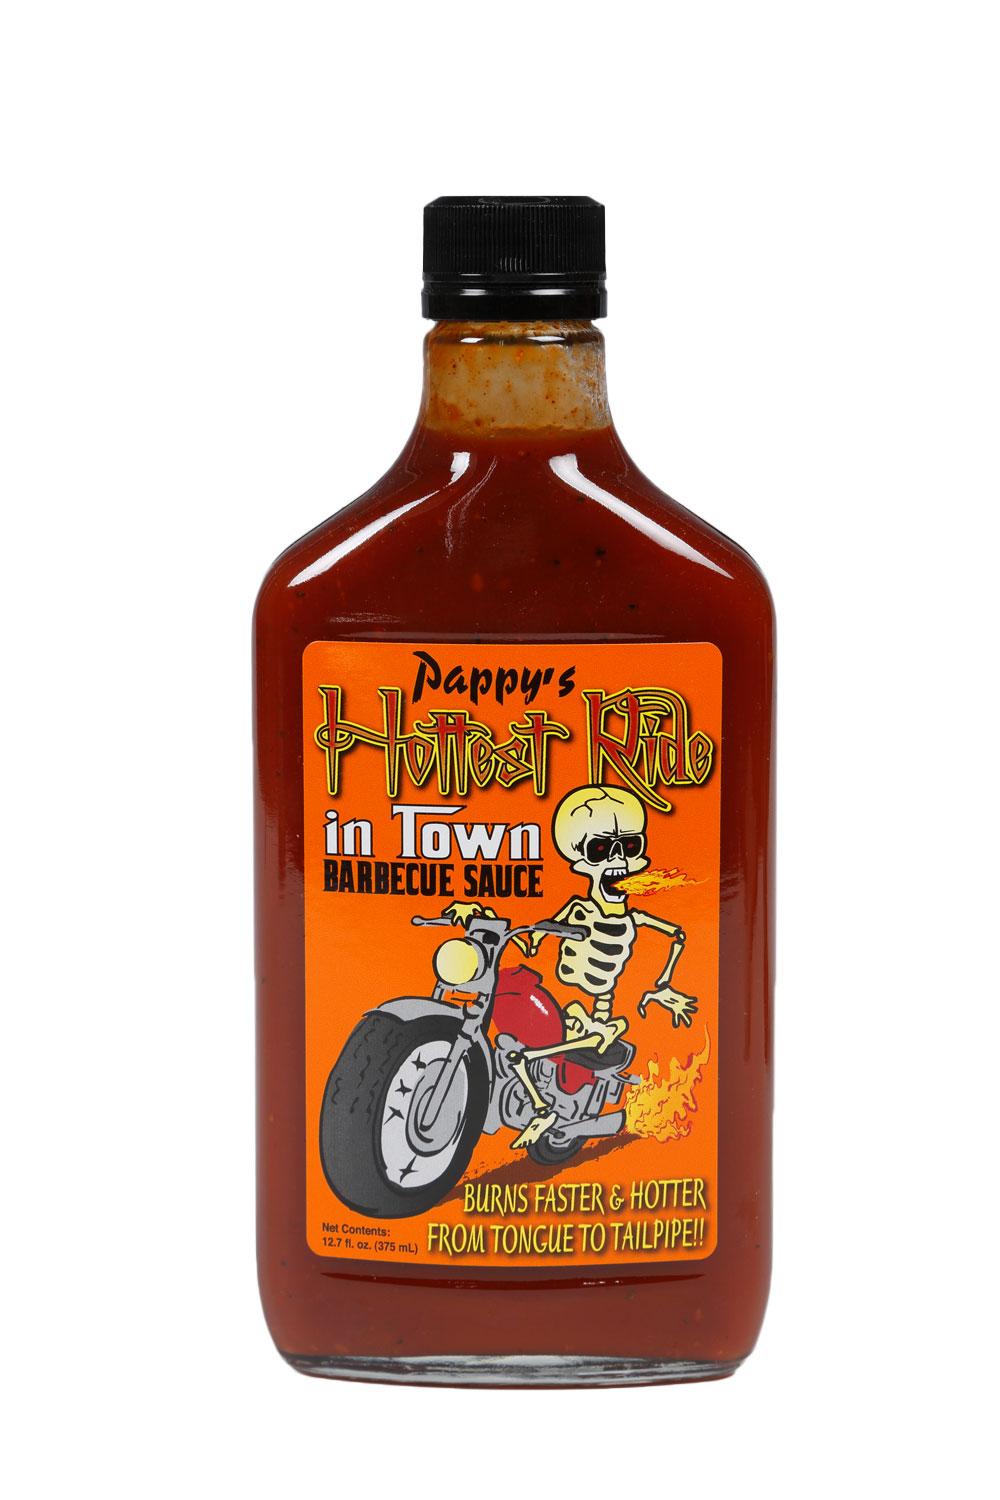 Kentucky Pappys Hottest Ride in Town BBQ Sauce - Image 1